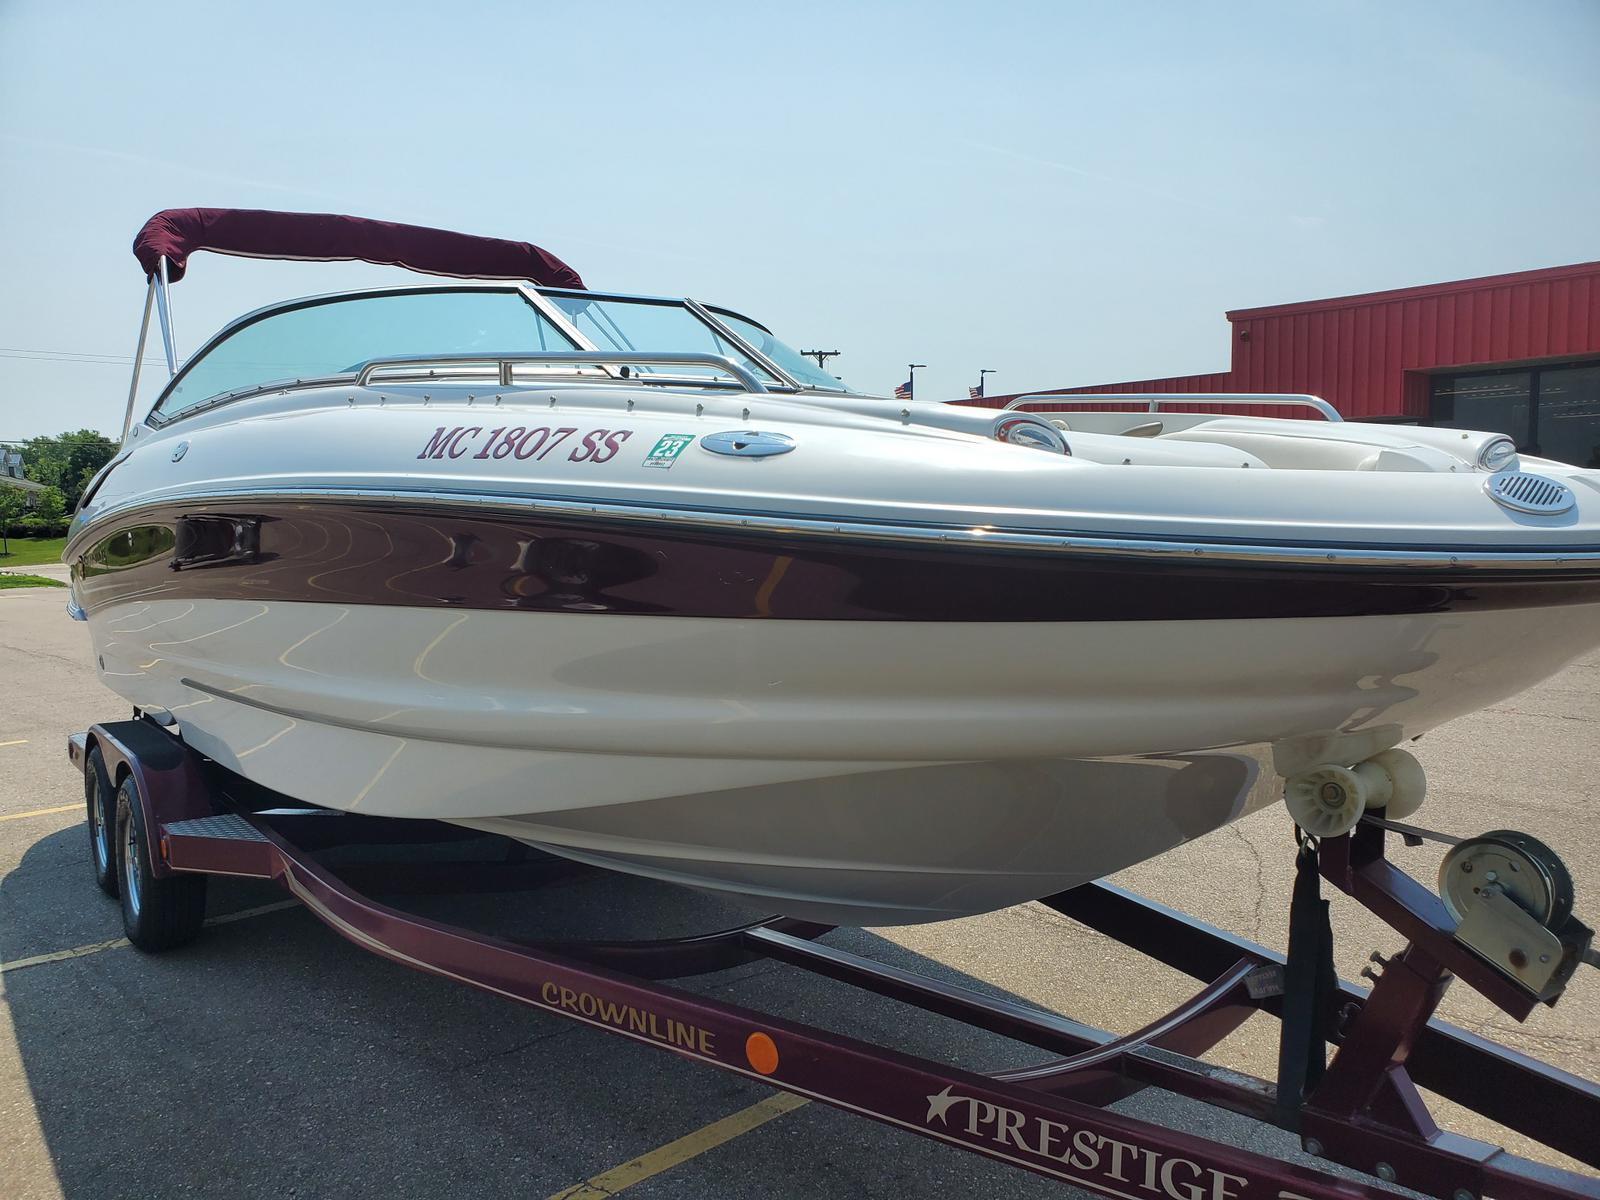 2004 Crownline boat for sale, model of the boat is Deck Boat 240 EX & Image # 3 of 12